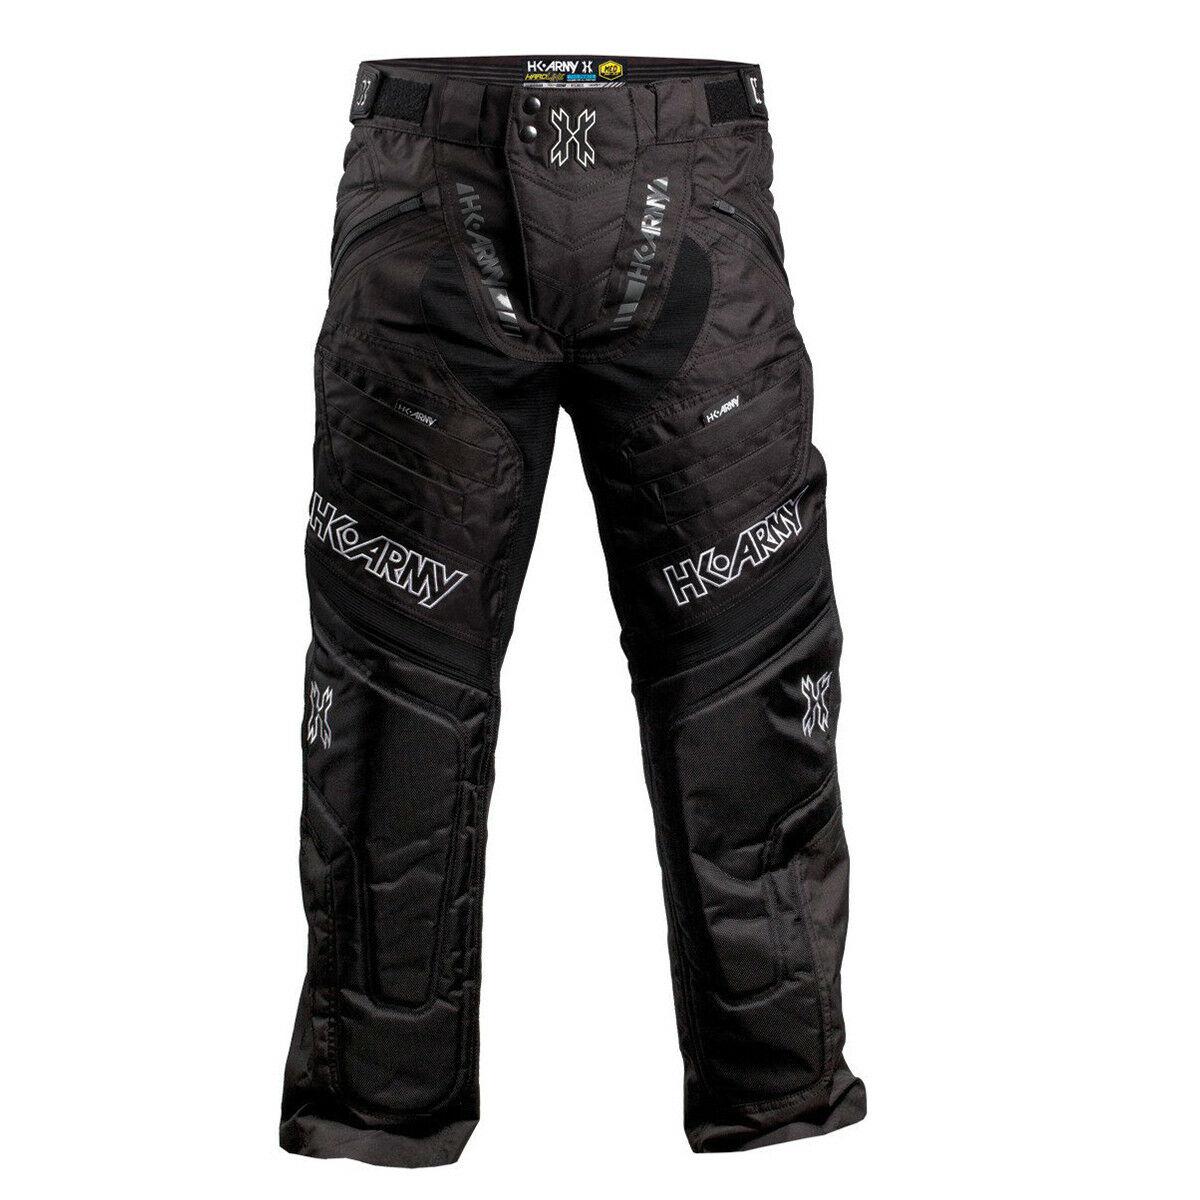 HK Army Hardline Pro Pants - Stealth - X-Small Small